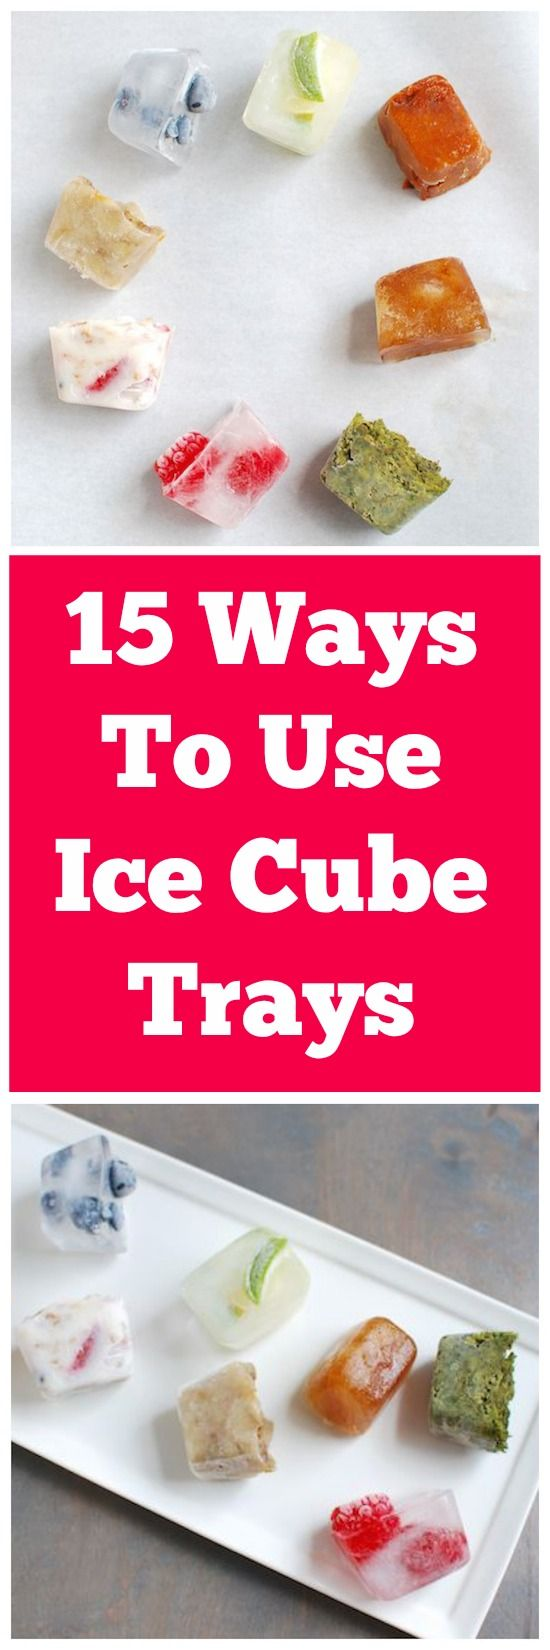 How clever is this?!! 15 Creative Ways to Use Ice Cube Trays @leangrnbeanblog #cooking #tips